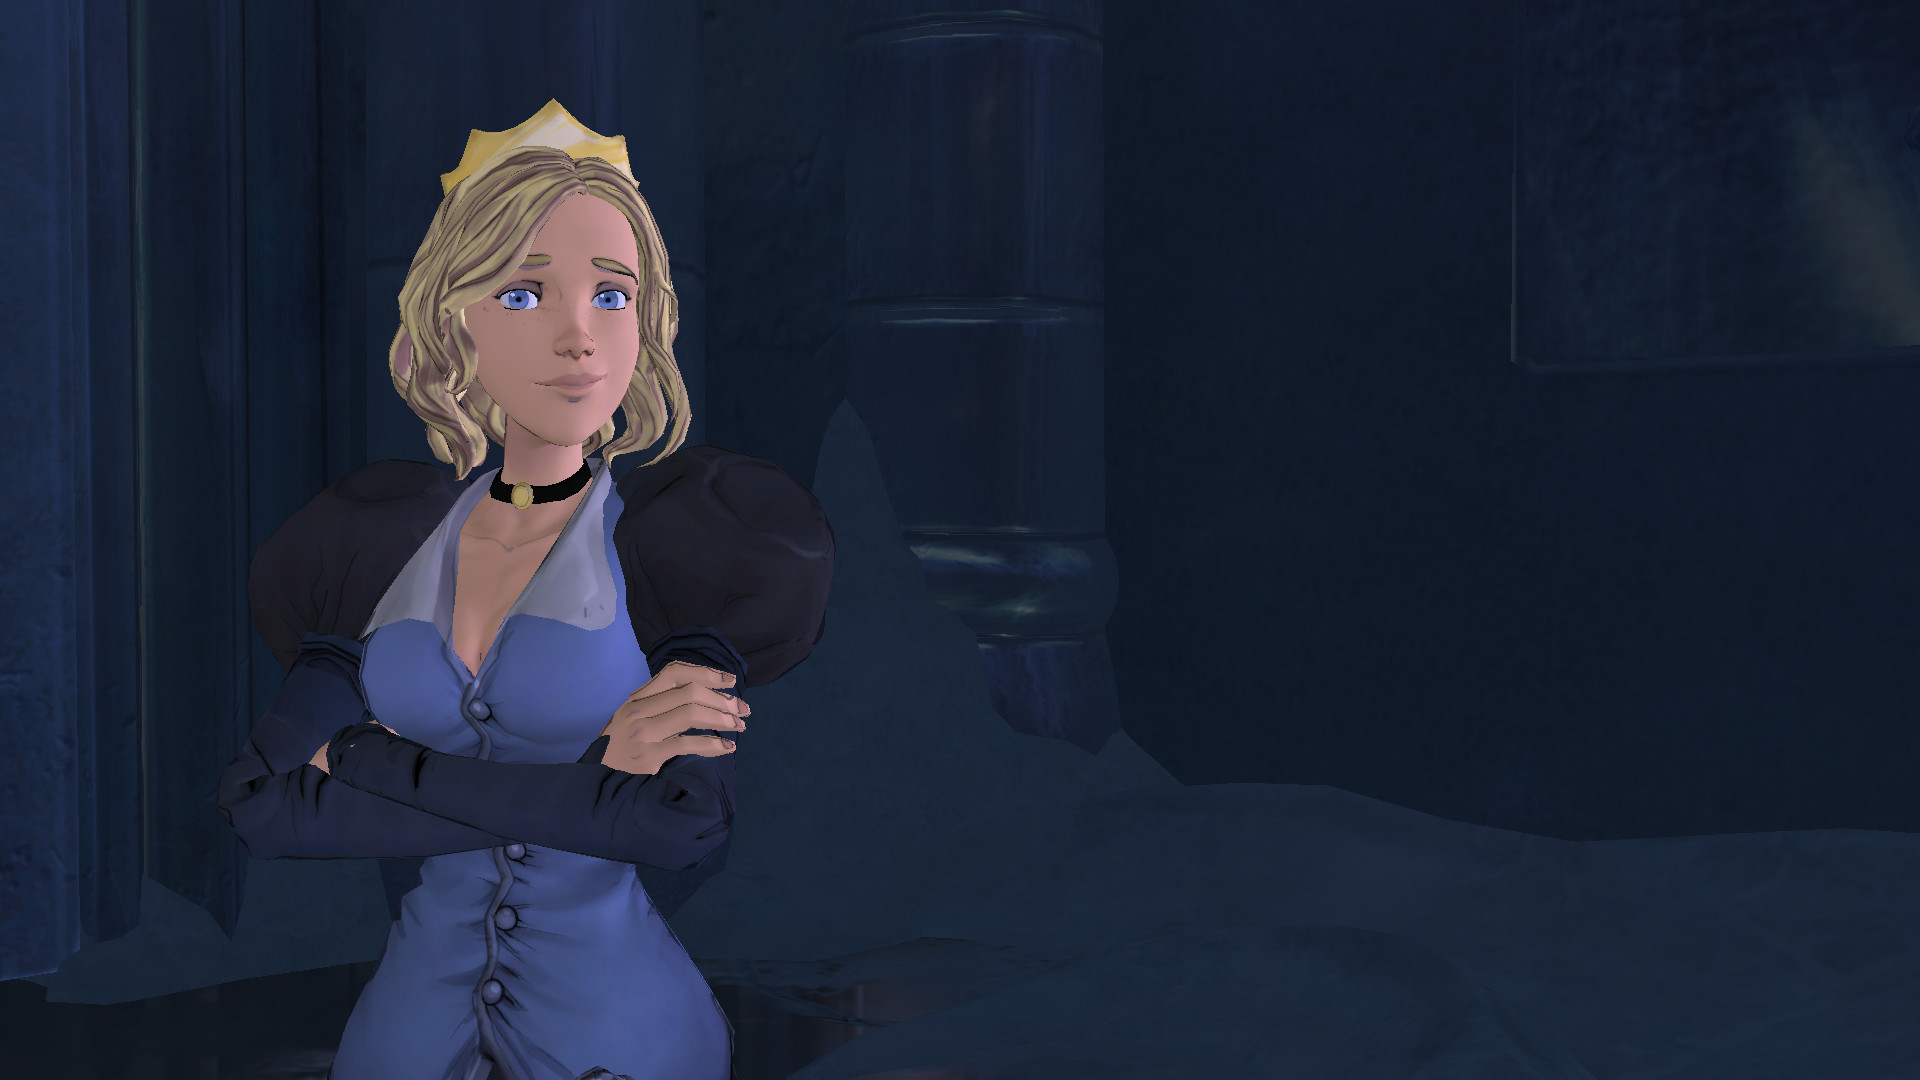 King's Quest - Chapter 4: Snow Place Like Home screenshot